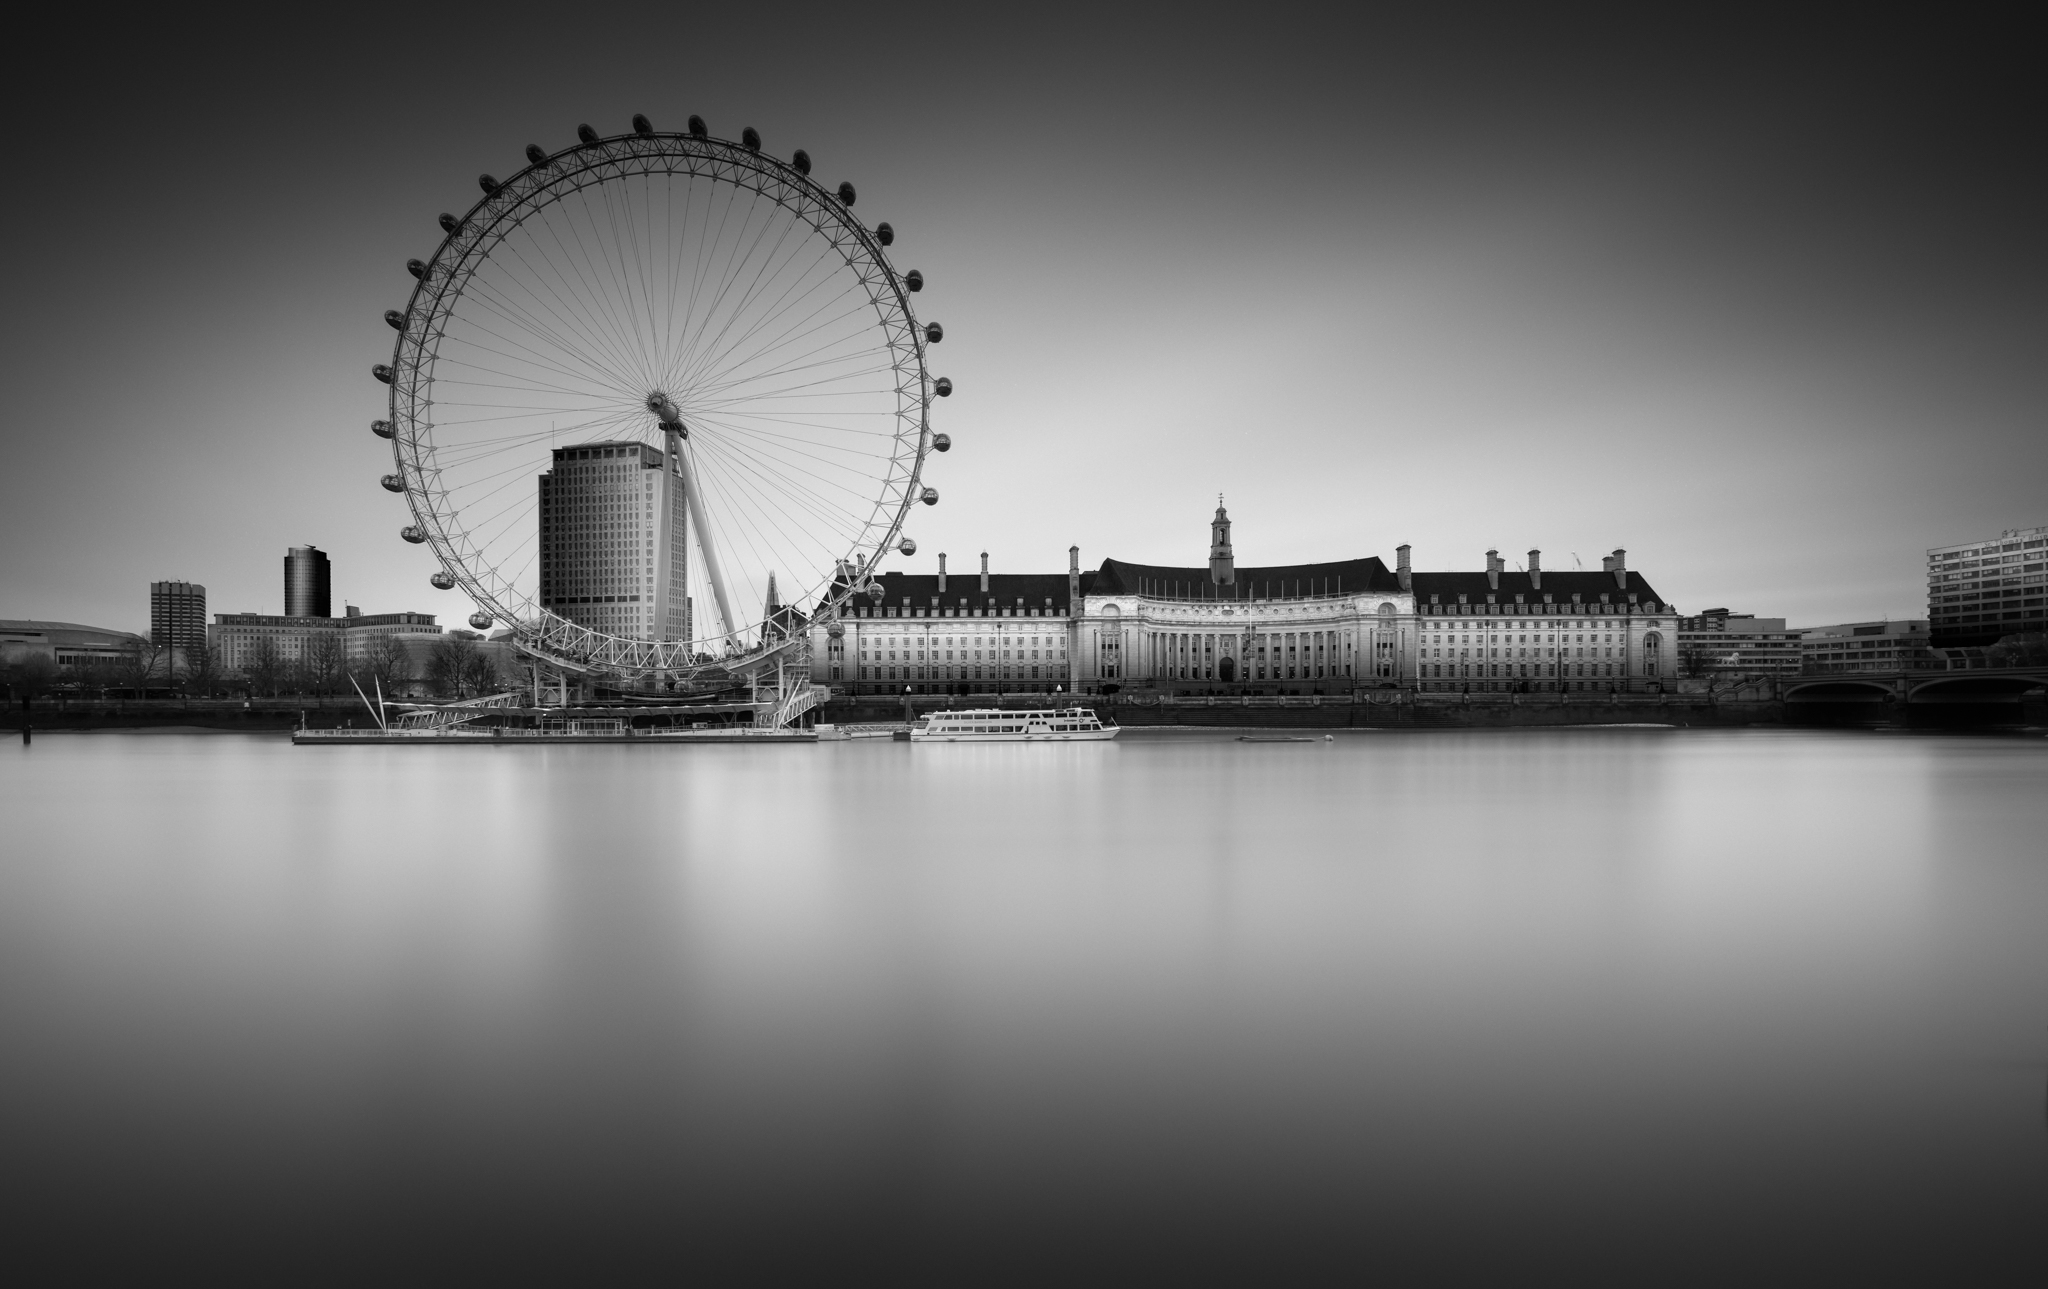 London eye, long exposure